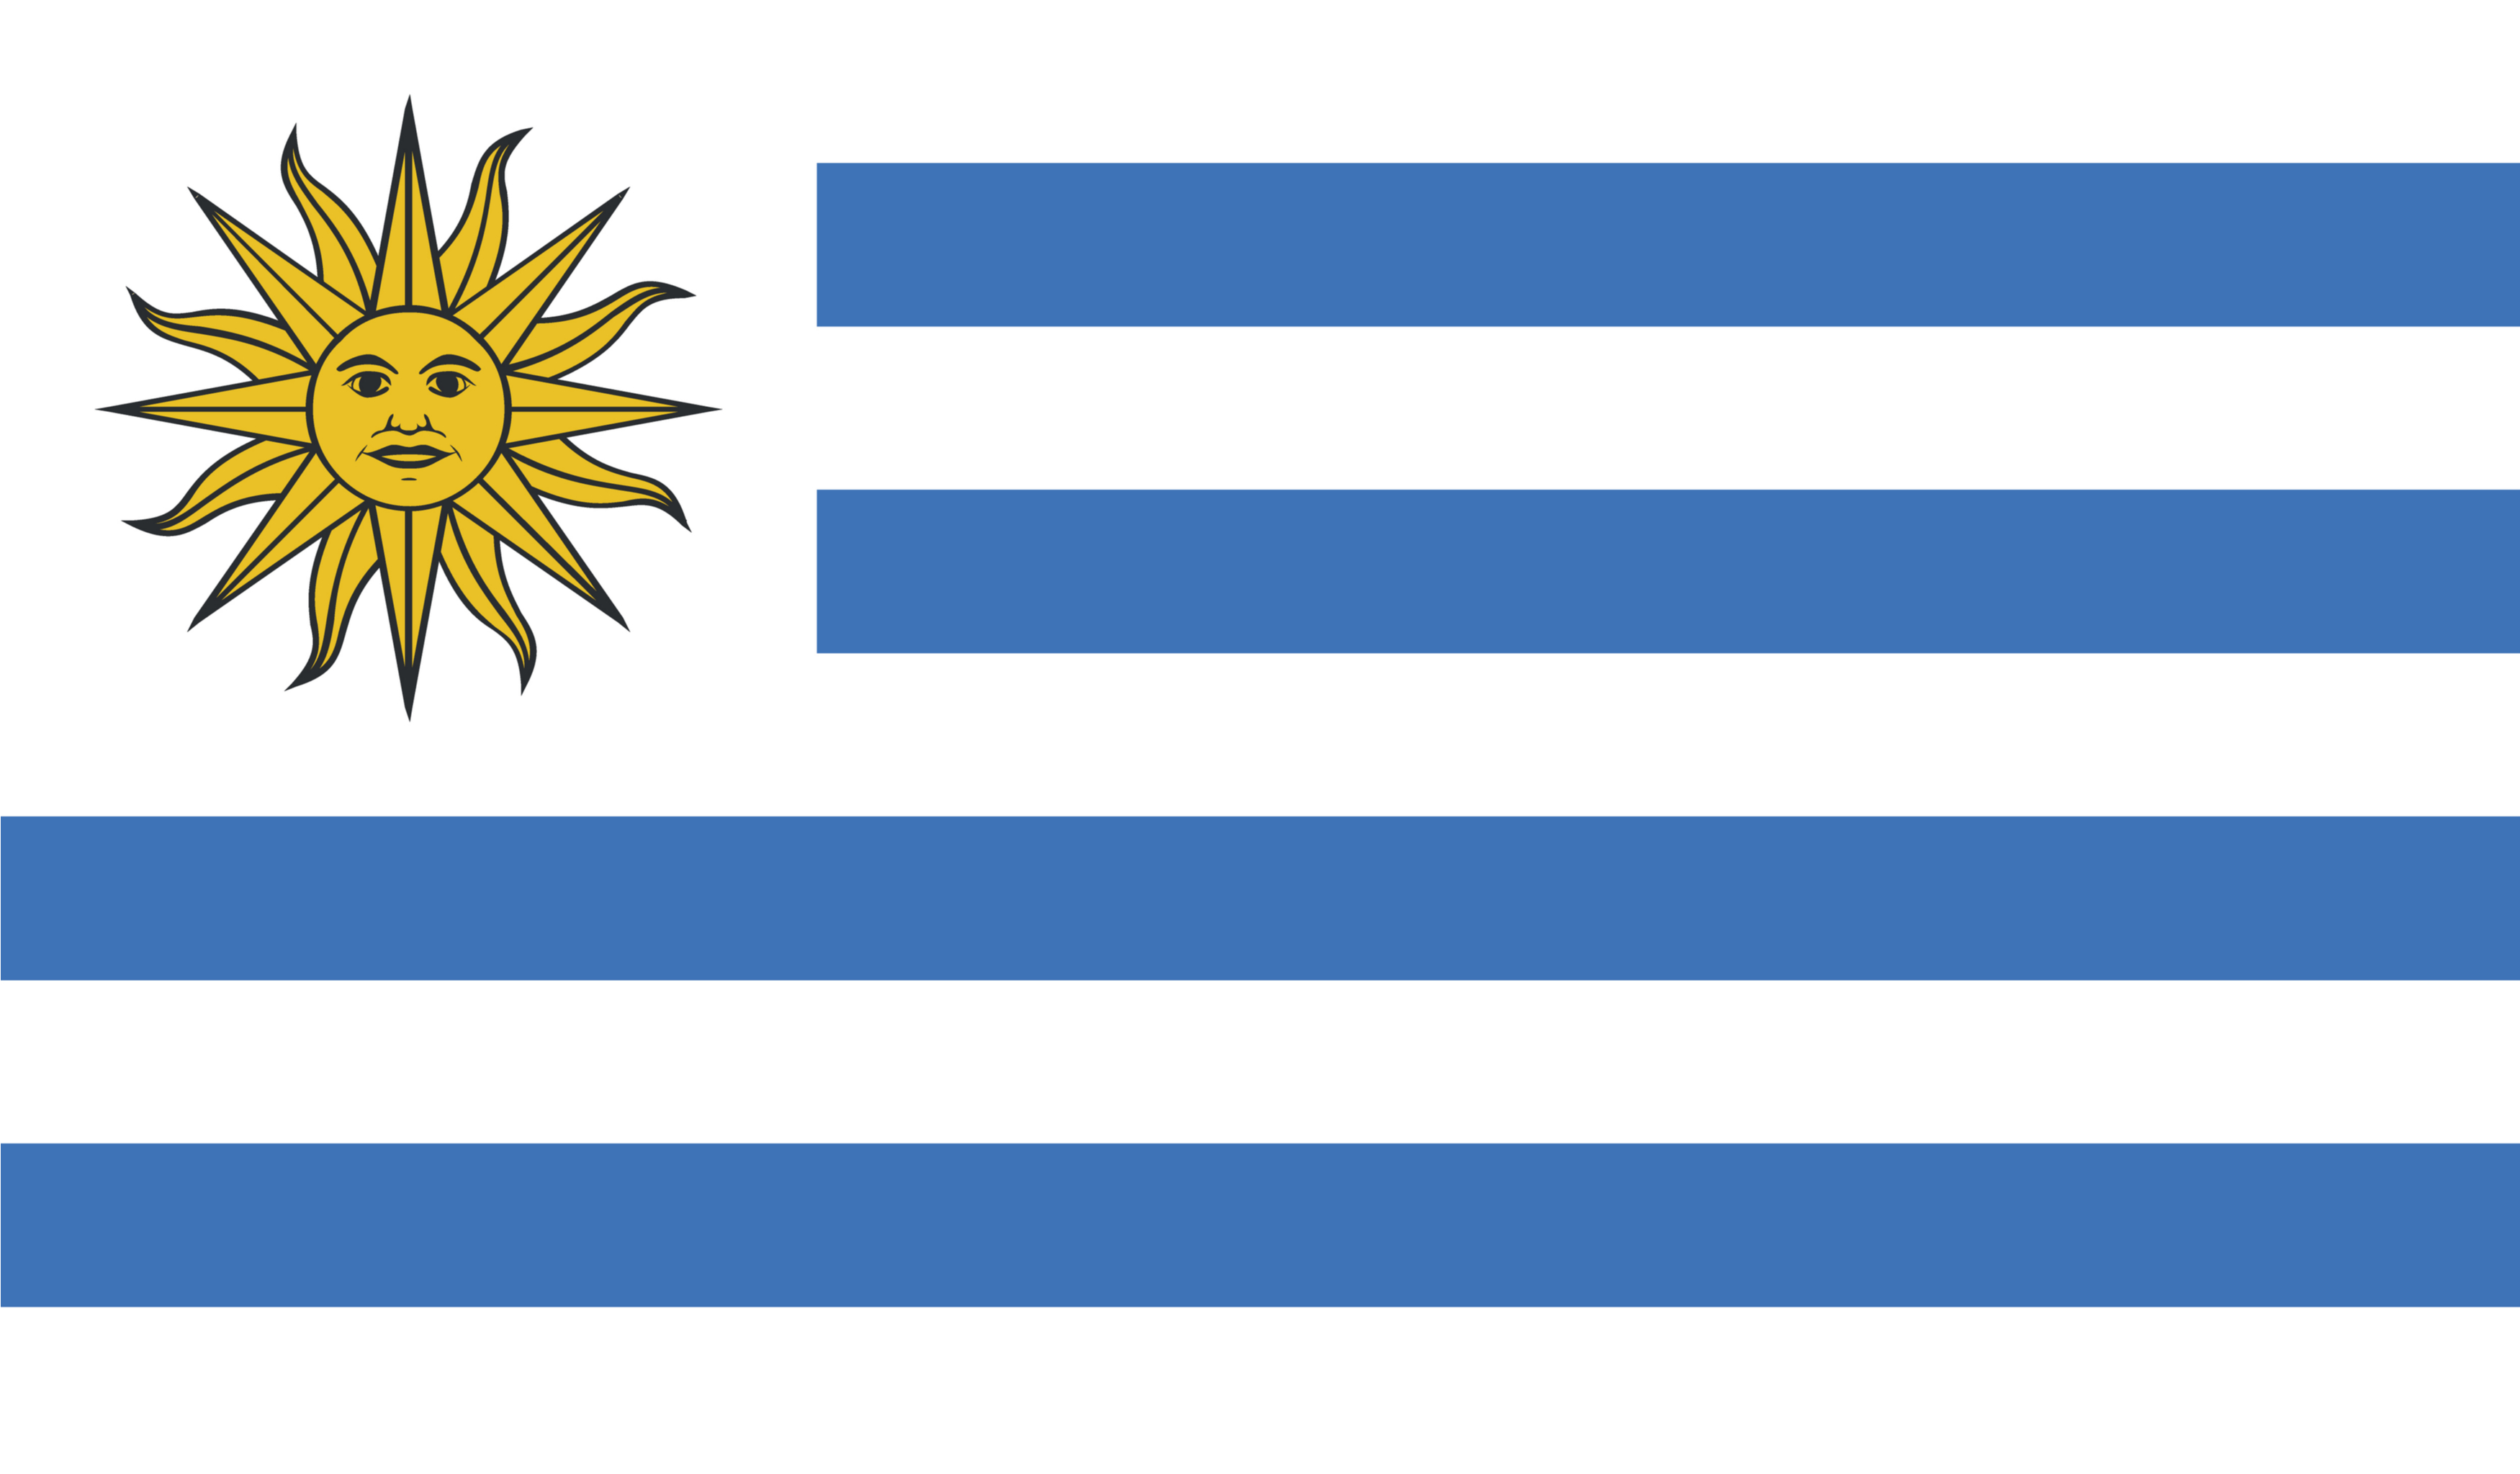 The current flag of Uruguay.